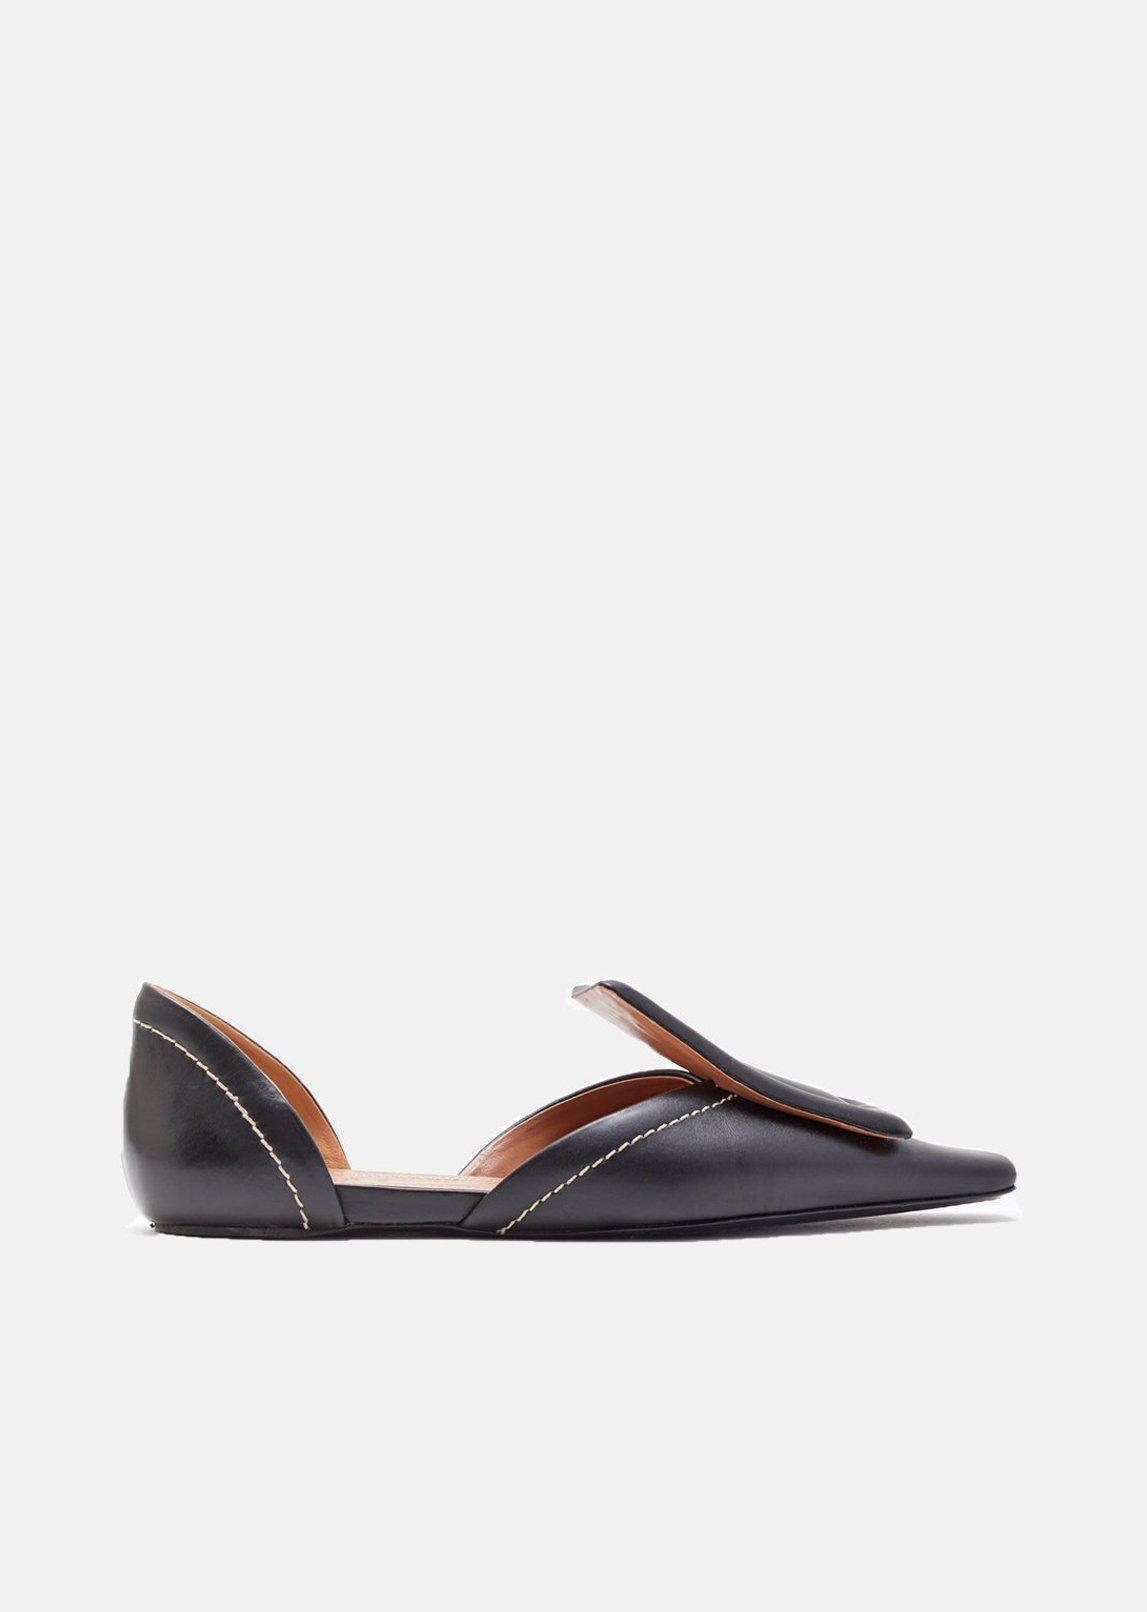 exclusive cheap price sale excellent Marni Leather d'Orsay Flats cheap sale official site discount get to buy many kinds of yUU8uze0z